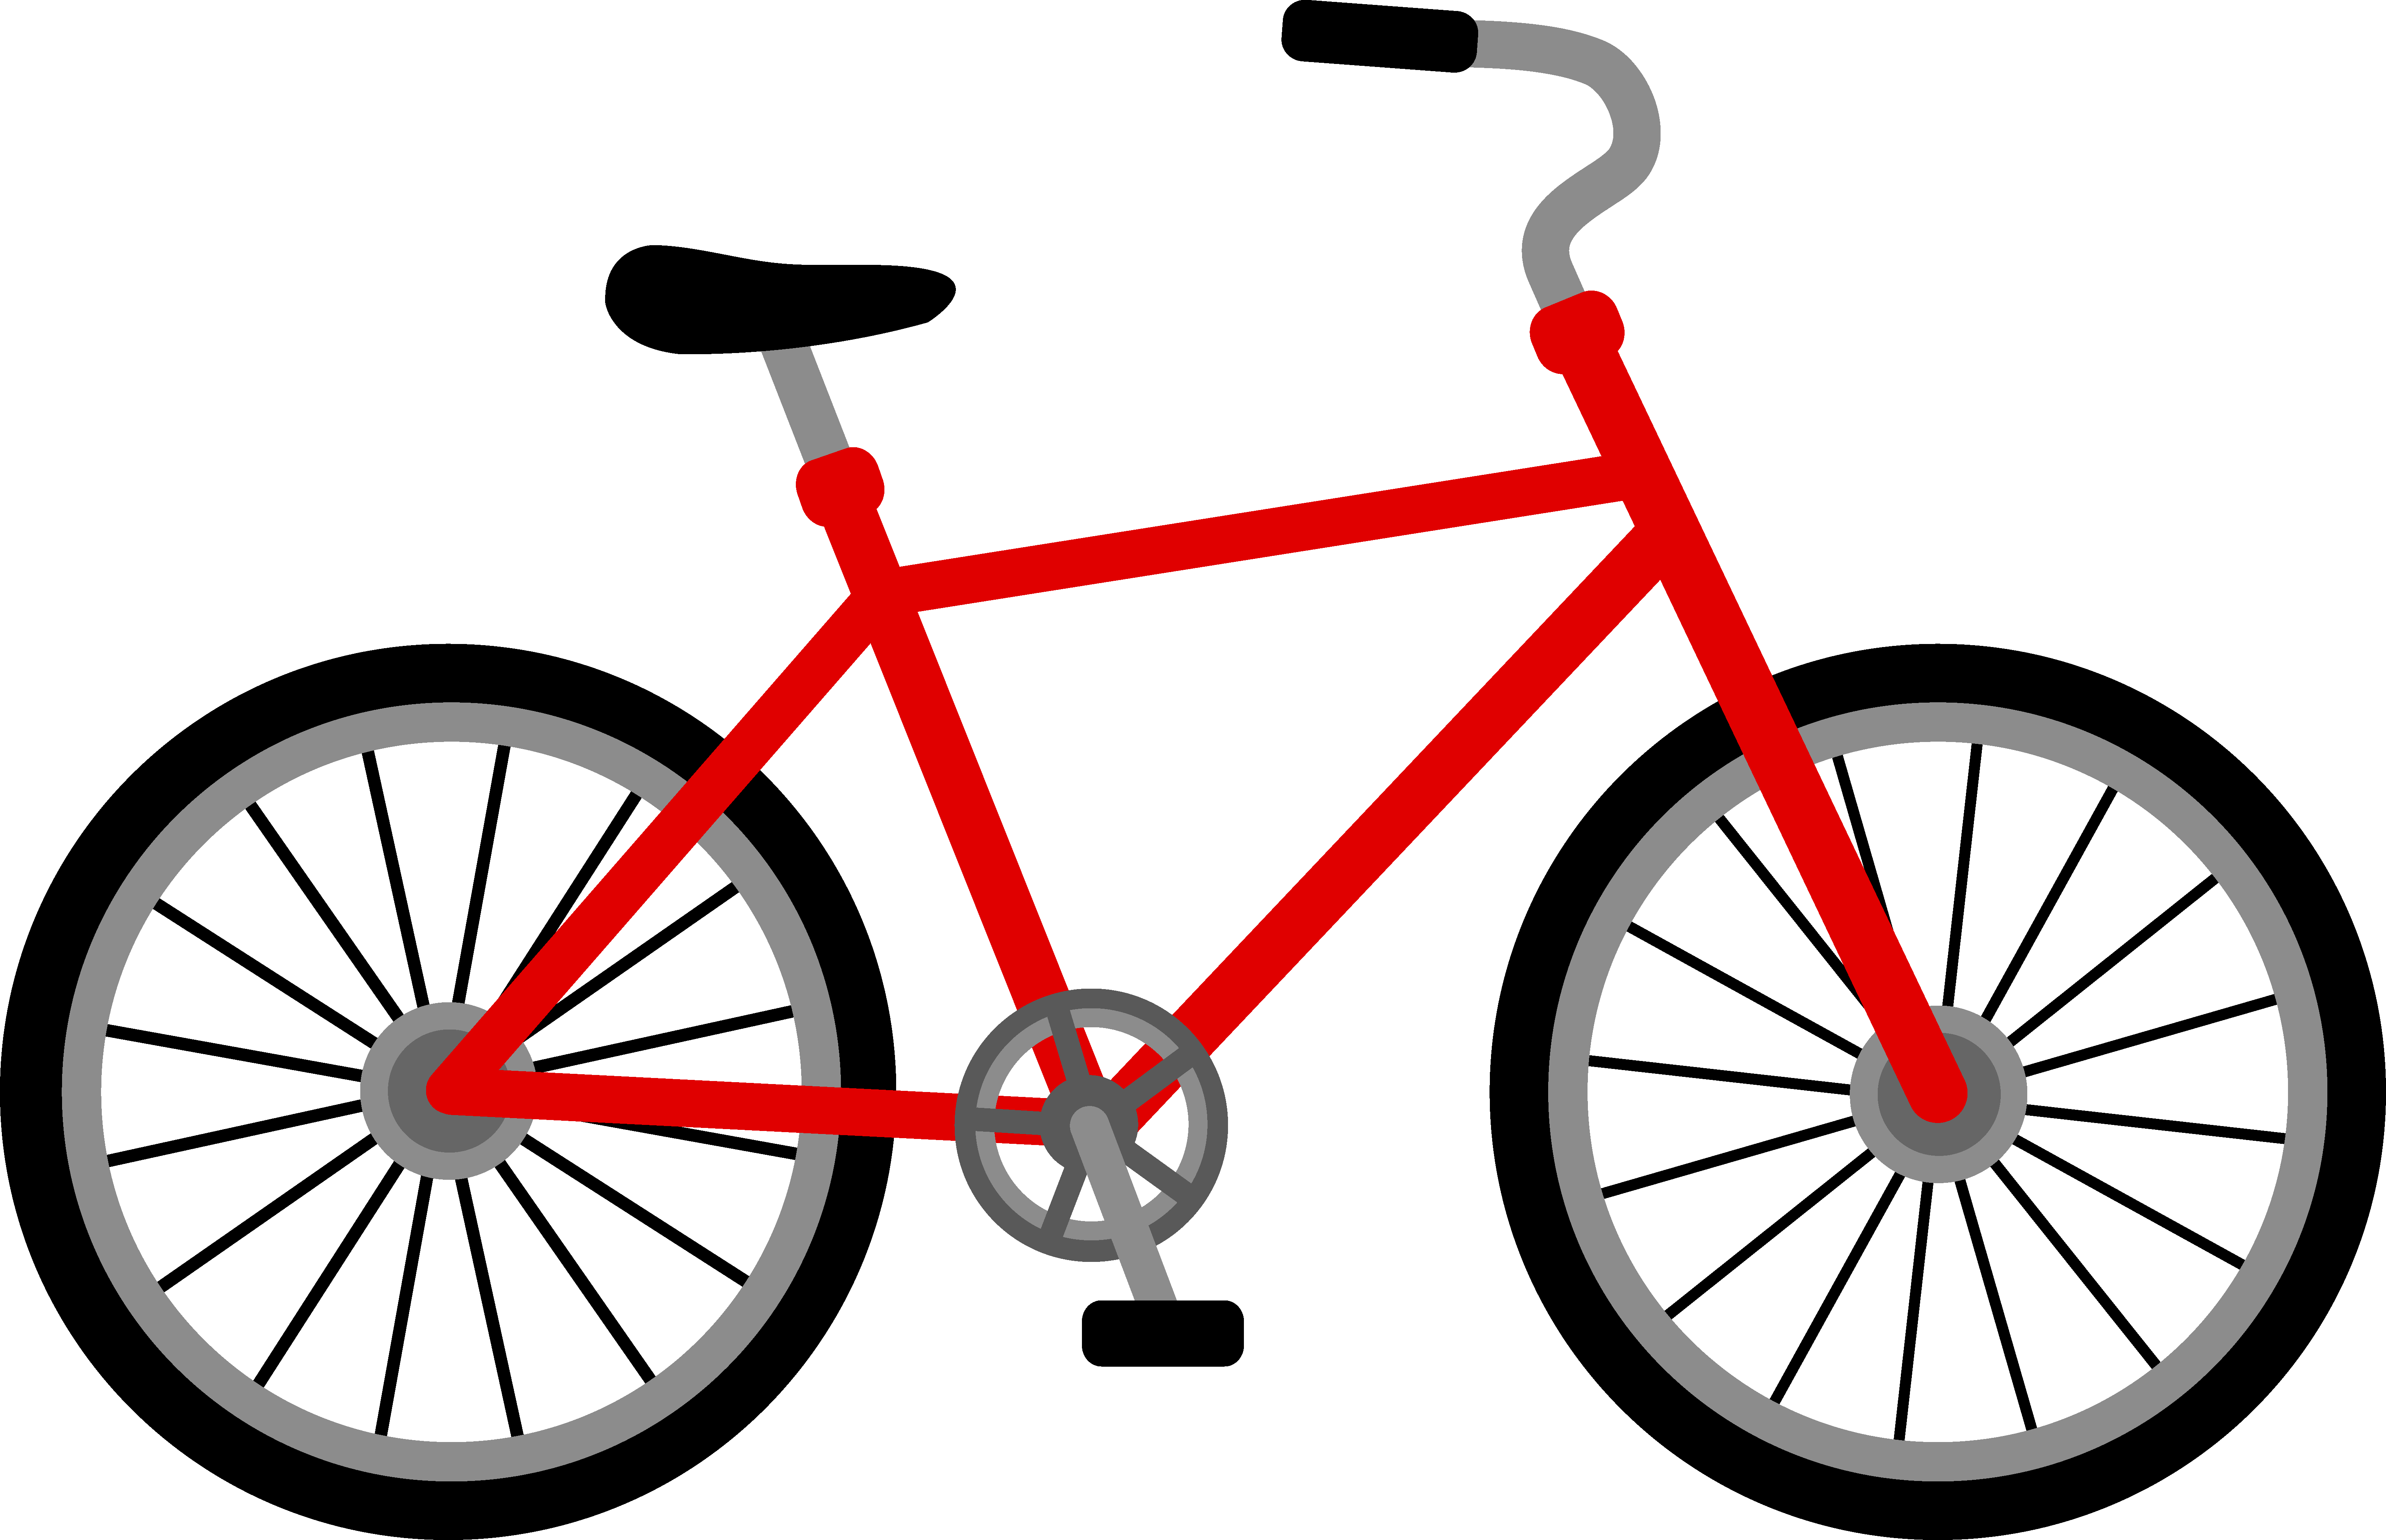 Bike desktop backgrounds bicycle. Cycle clipart pop clip download